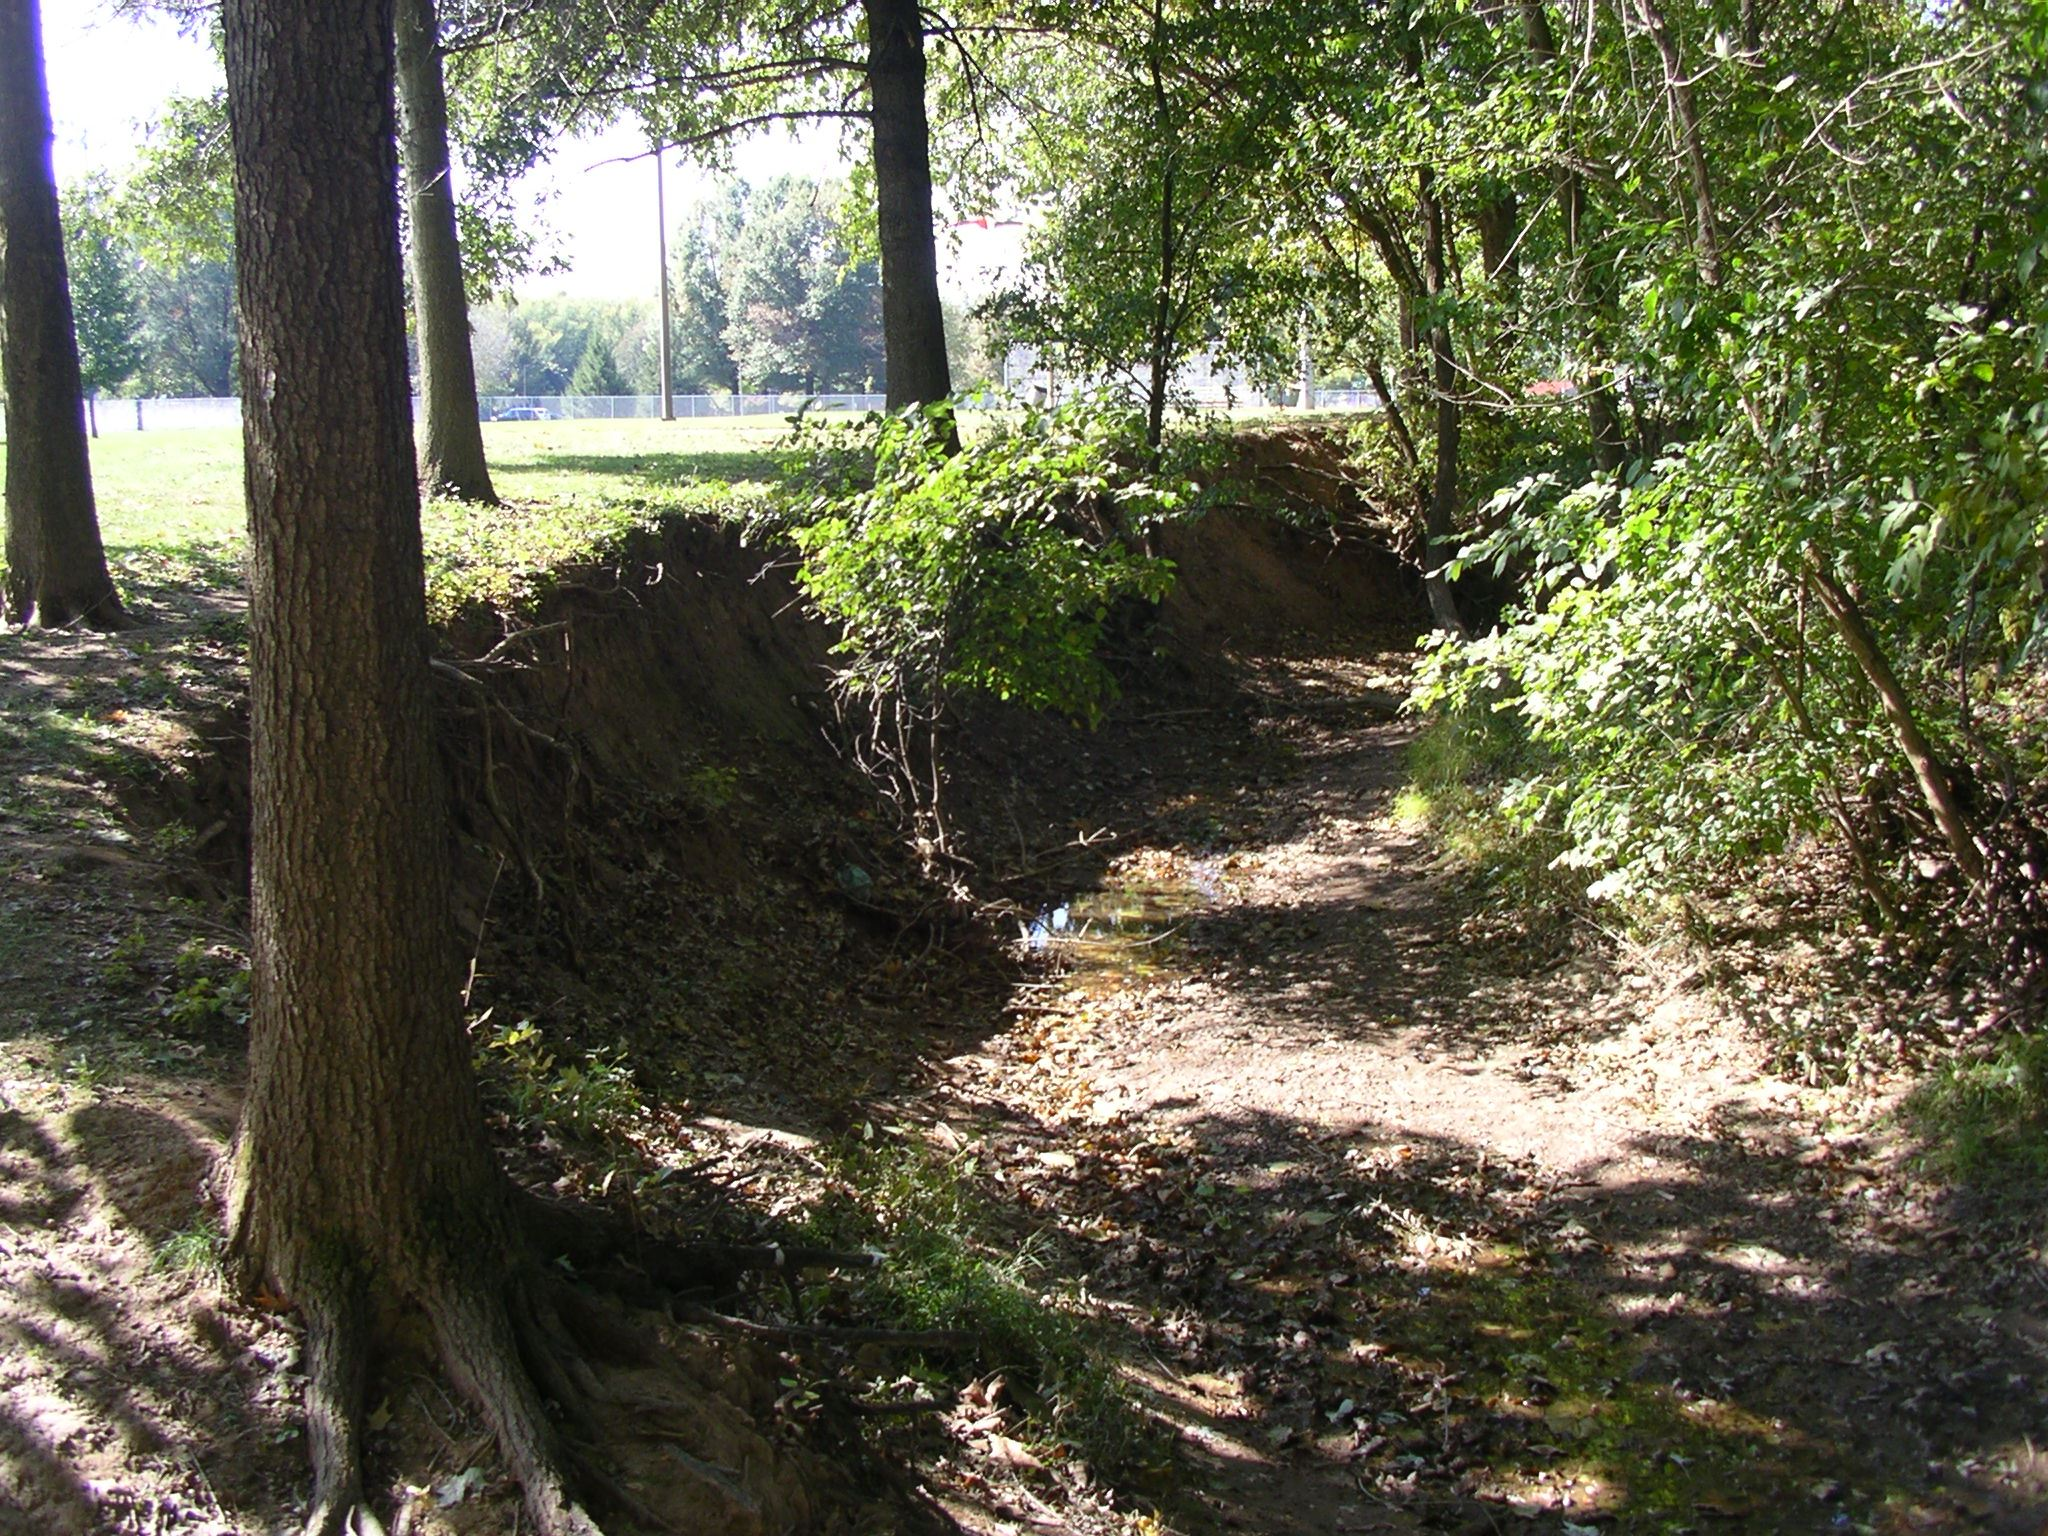 Pinecliff Stream - 2009 (Before)